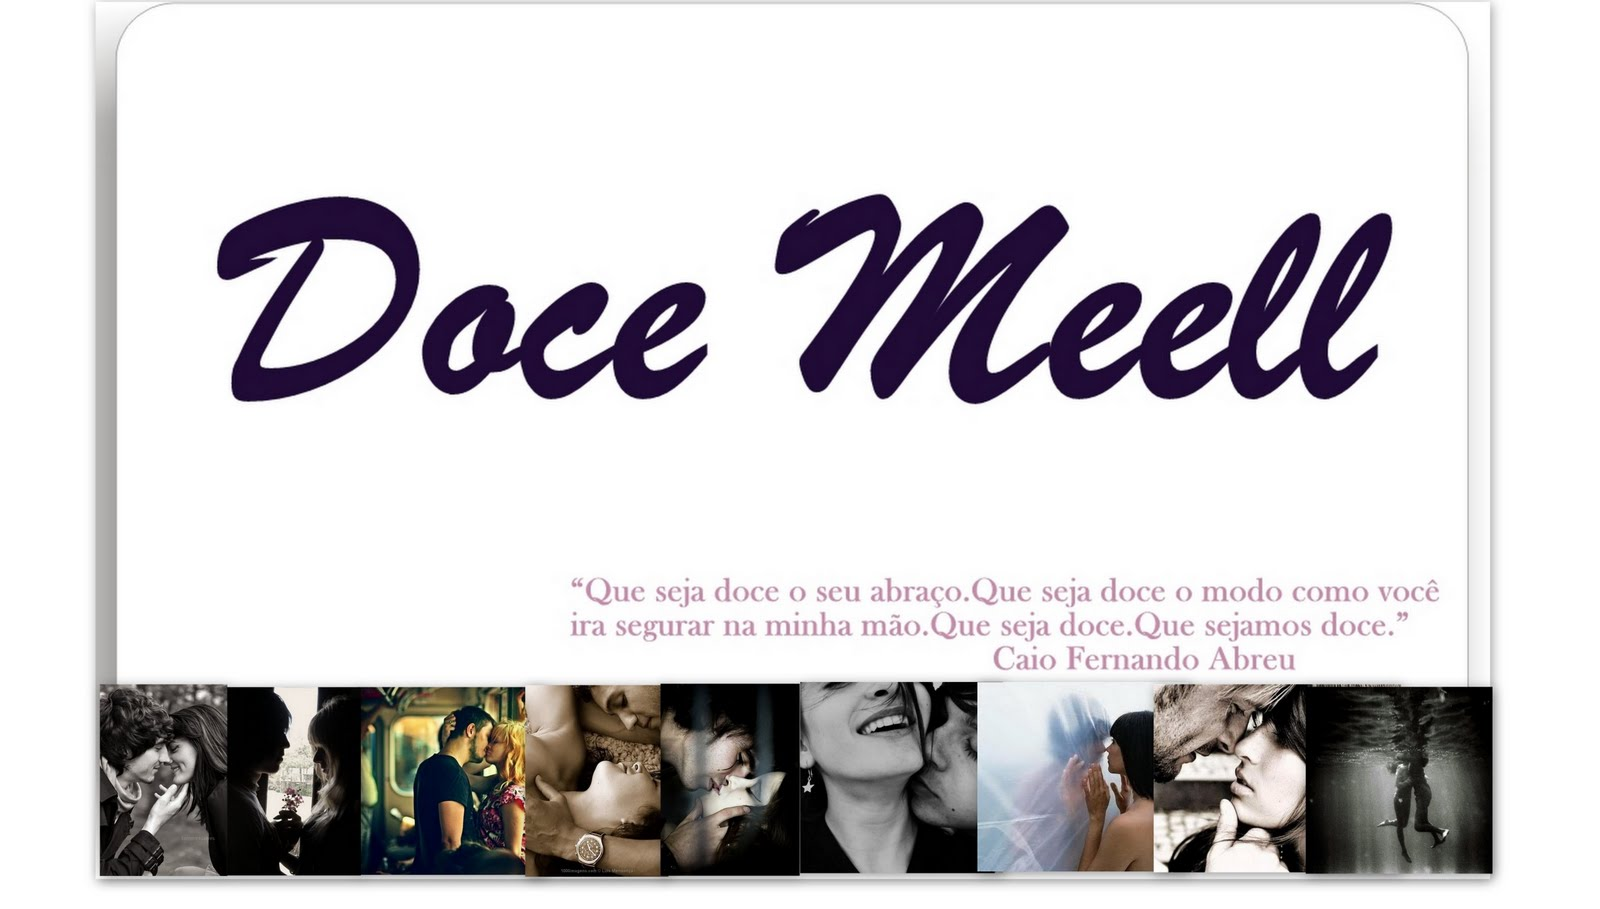 Doce Meell